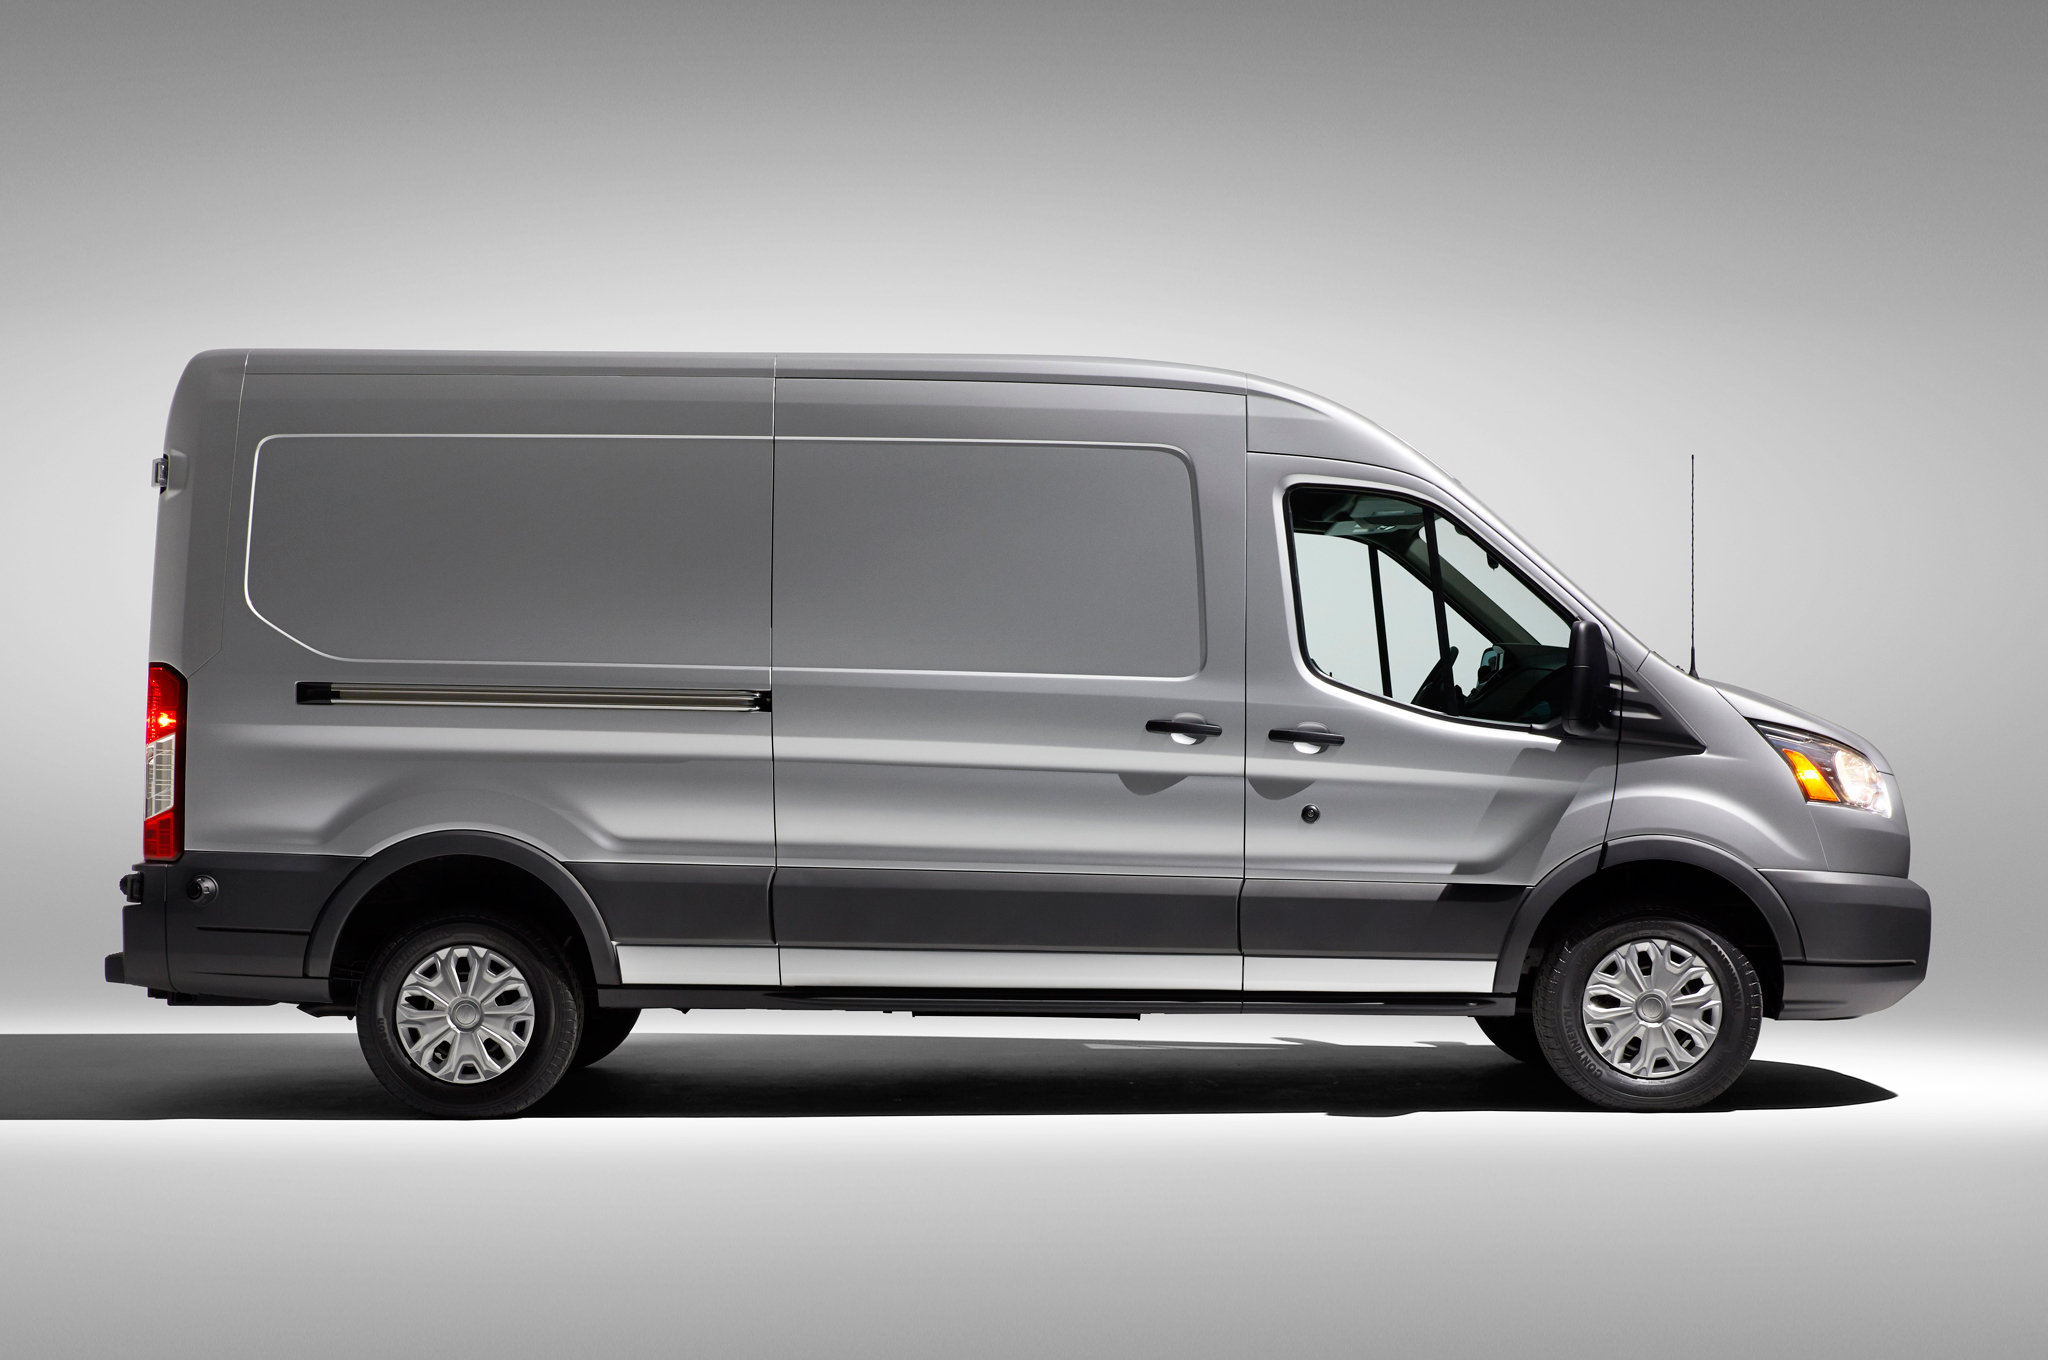 2015 Ford Transit 150 Rear Exterior (Photo 11 of 13)